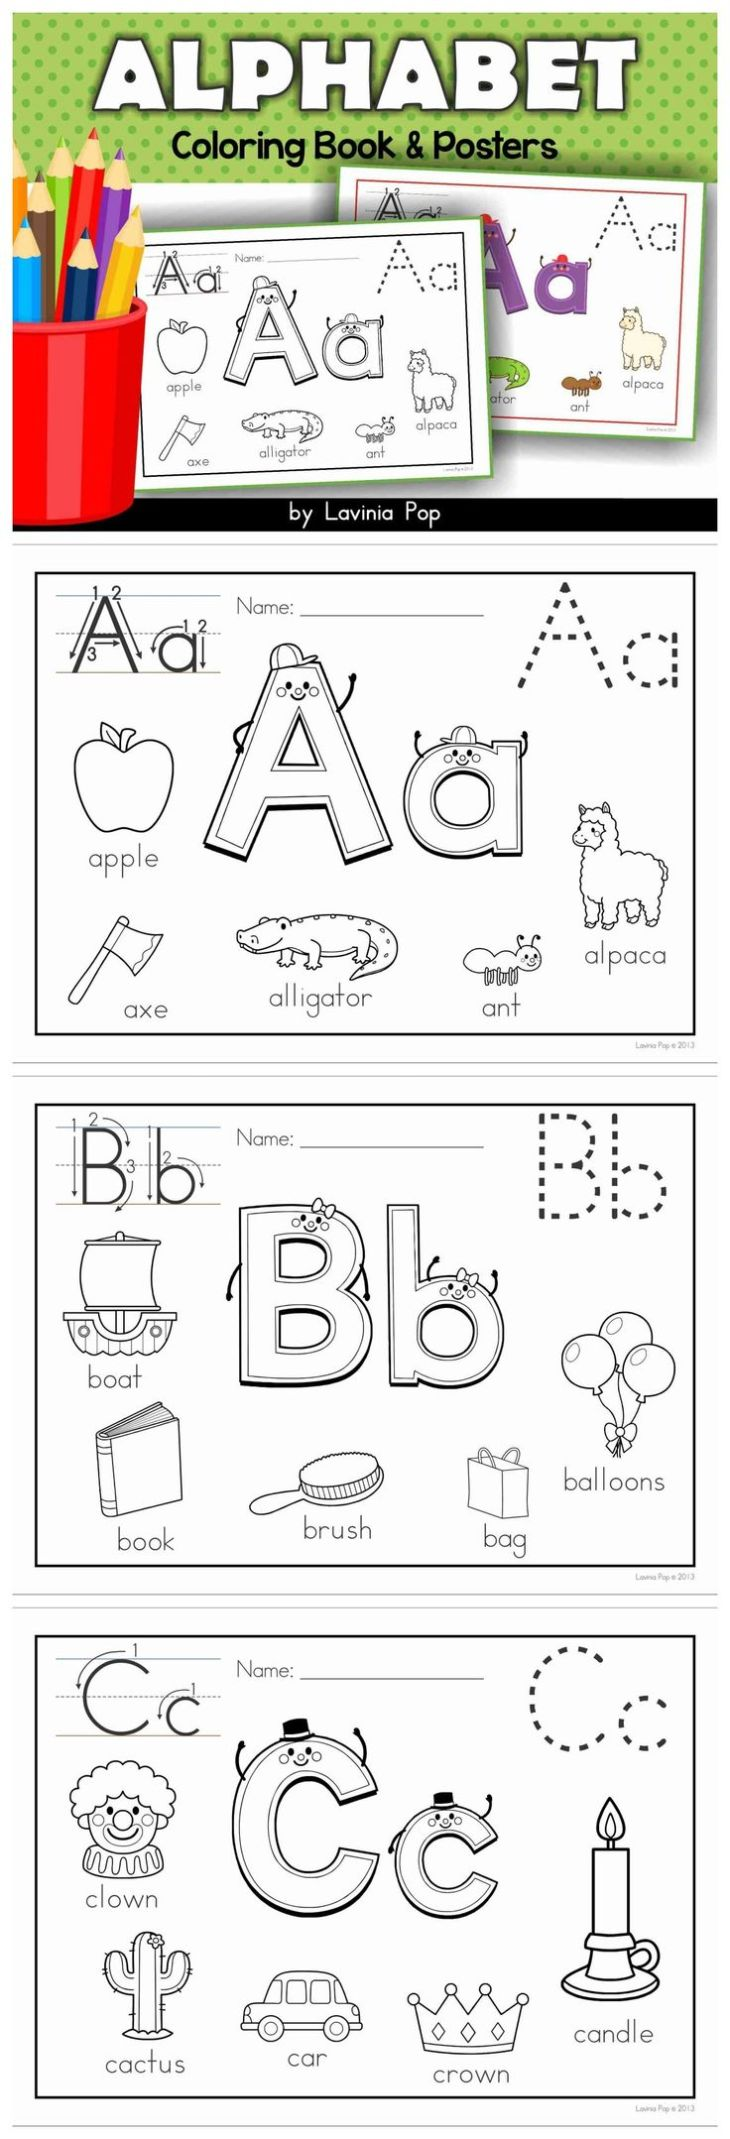 best images about Letter Tracing on Pinterest Emergent readers